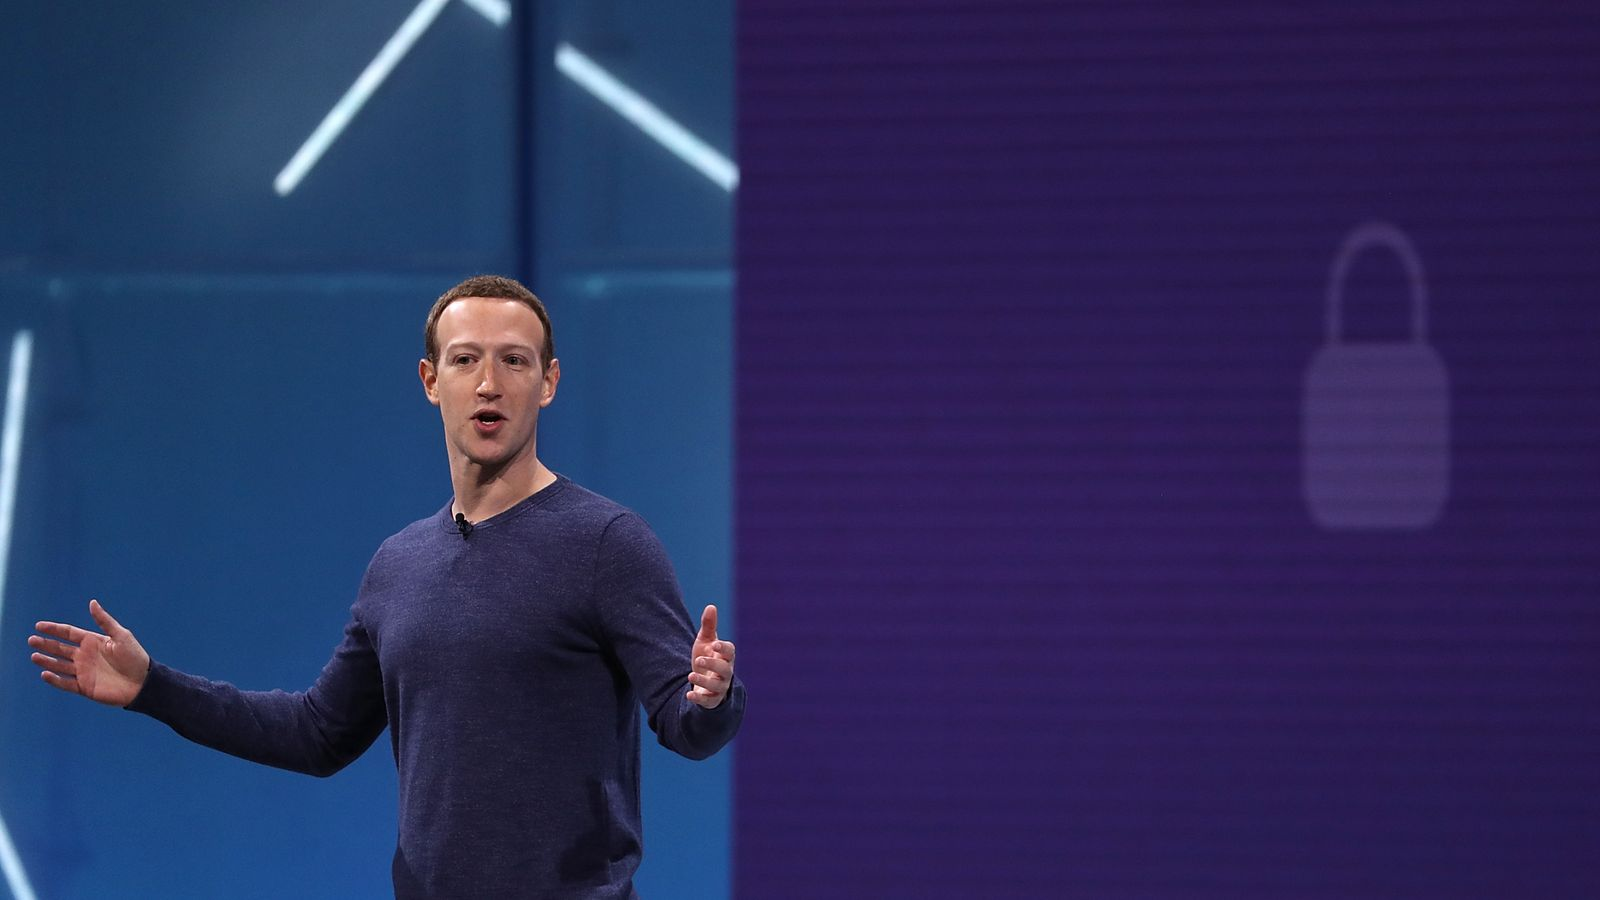 Zuckerberg agrees to face EU Parliament over Facebook data use